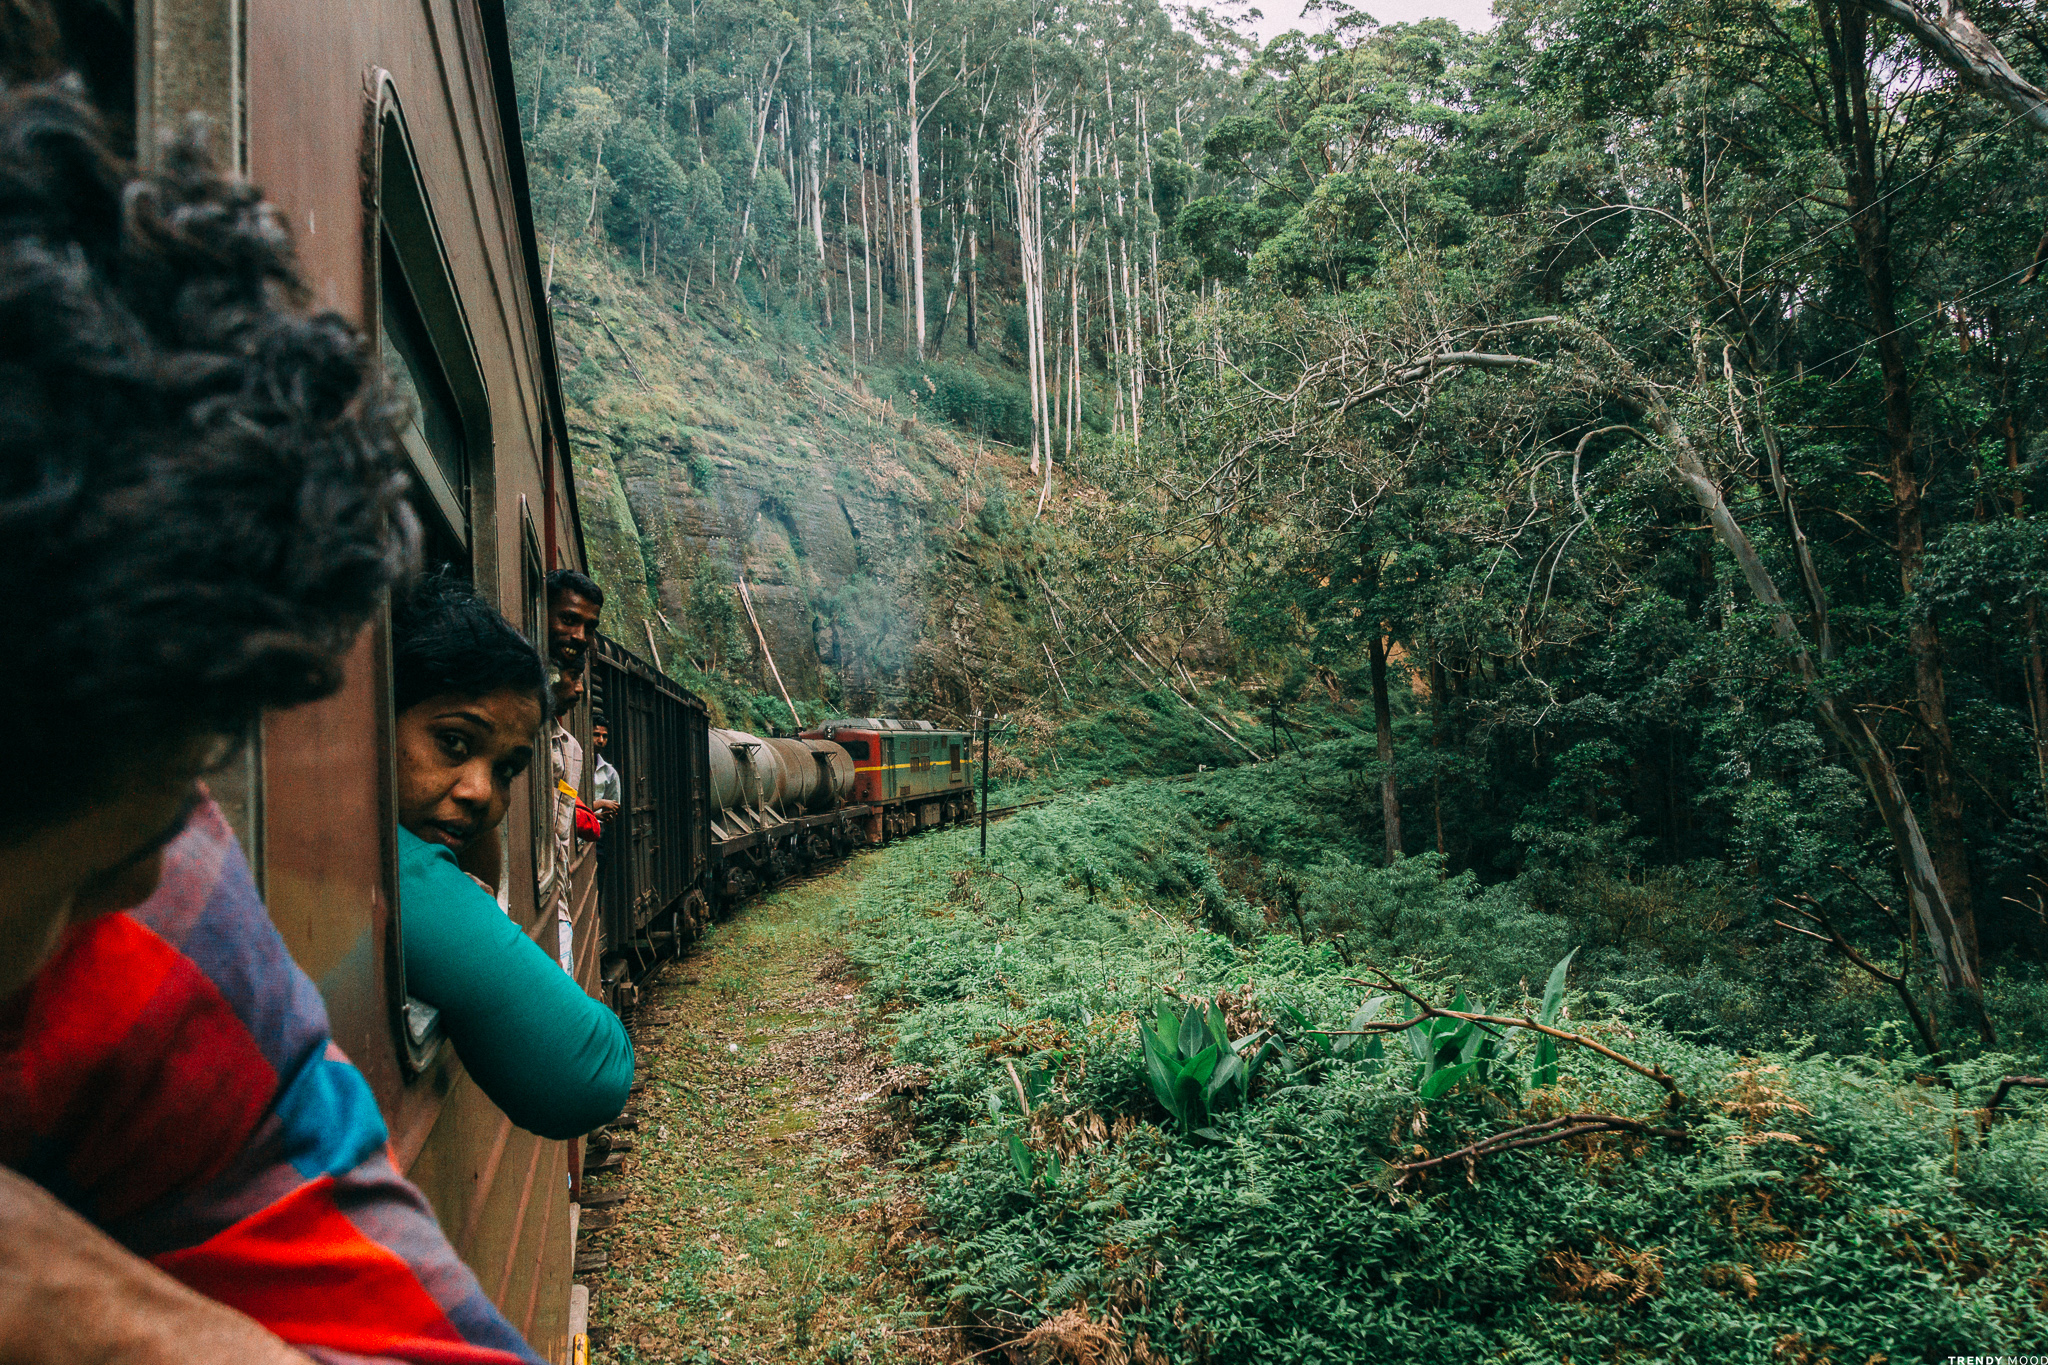 Sri Lanka - Train